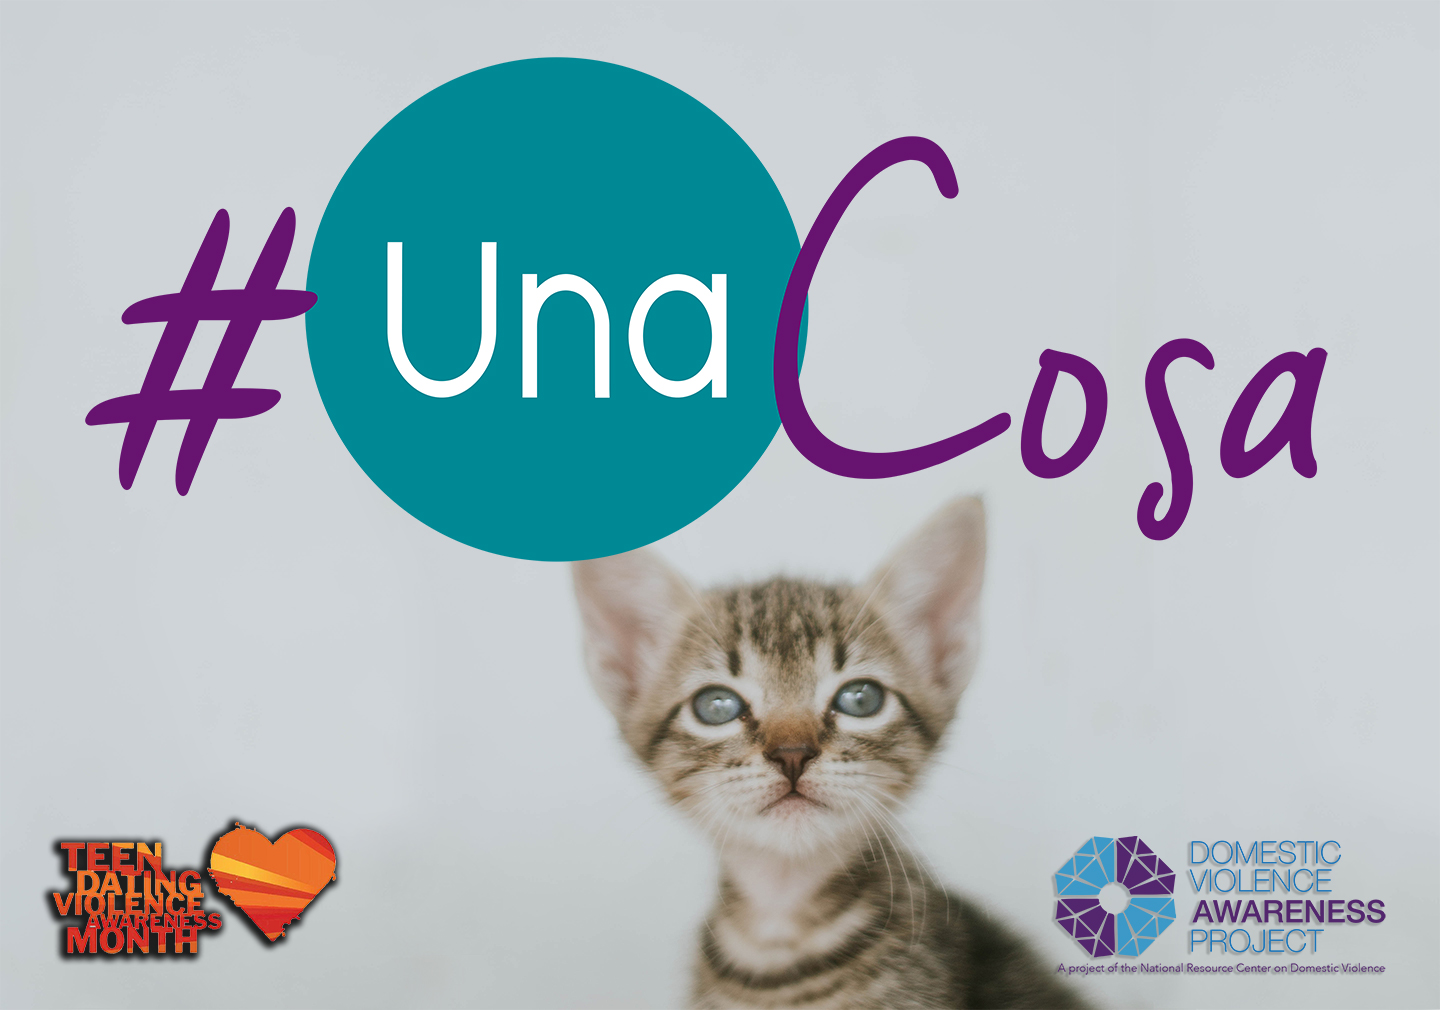 #UnaCosa logo imposed over image of a kitten